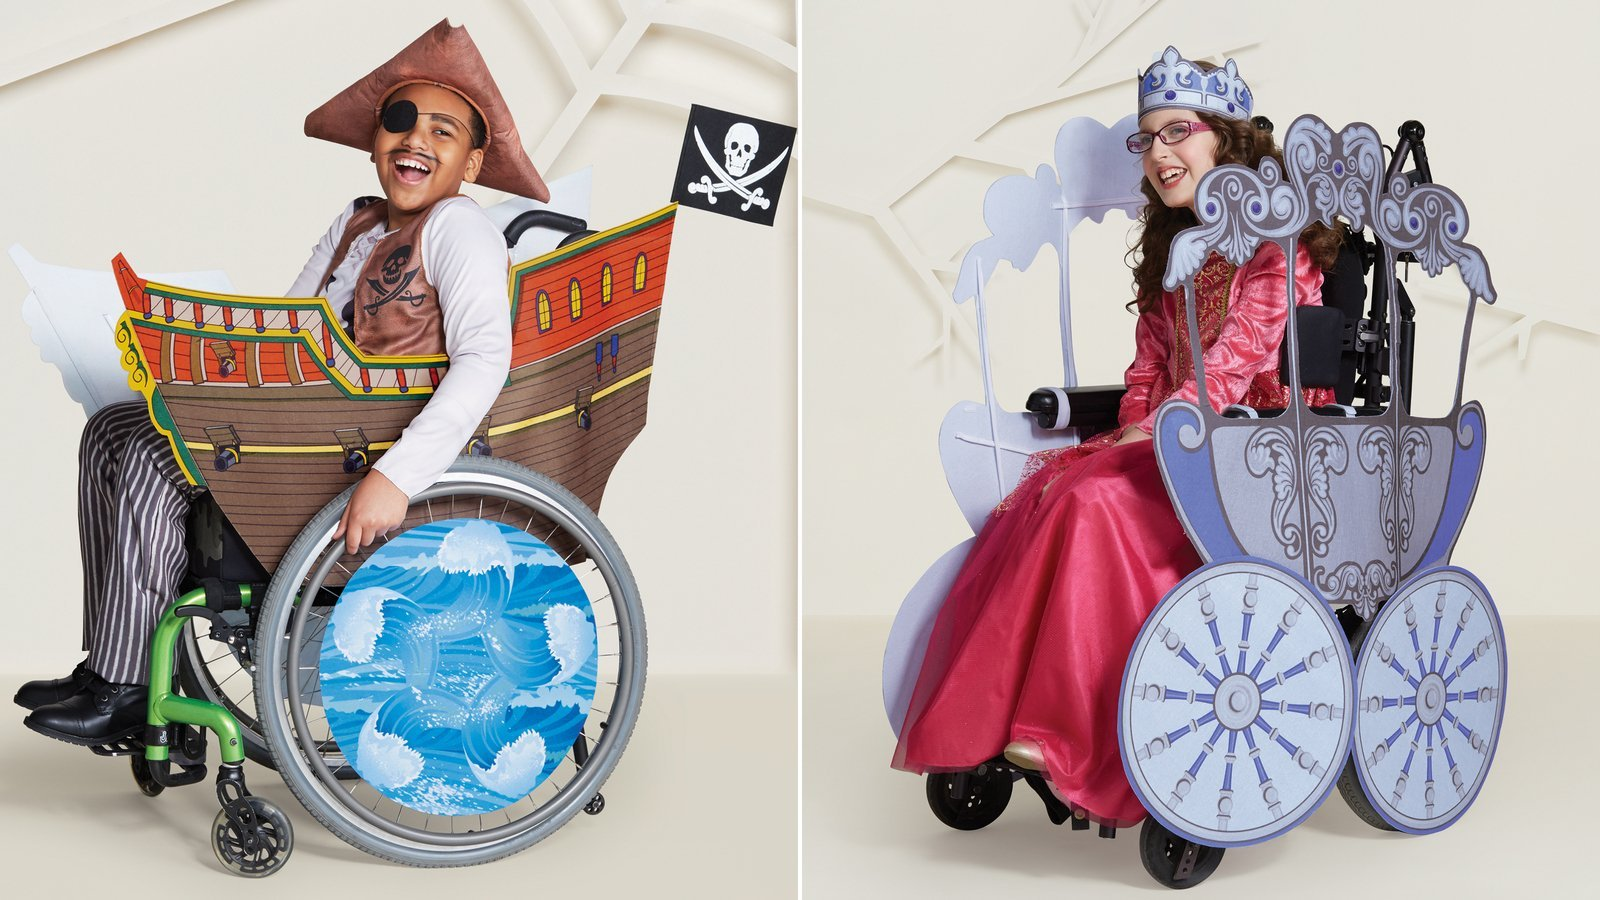 Kids with disabilities can now get special Halloween costumes at Target